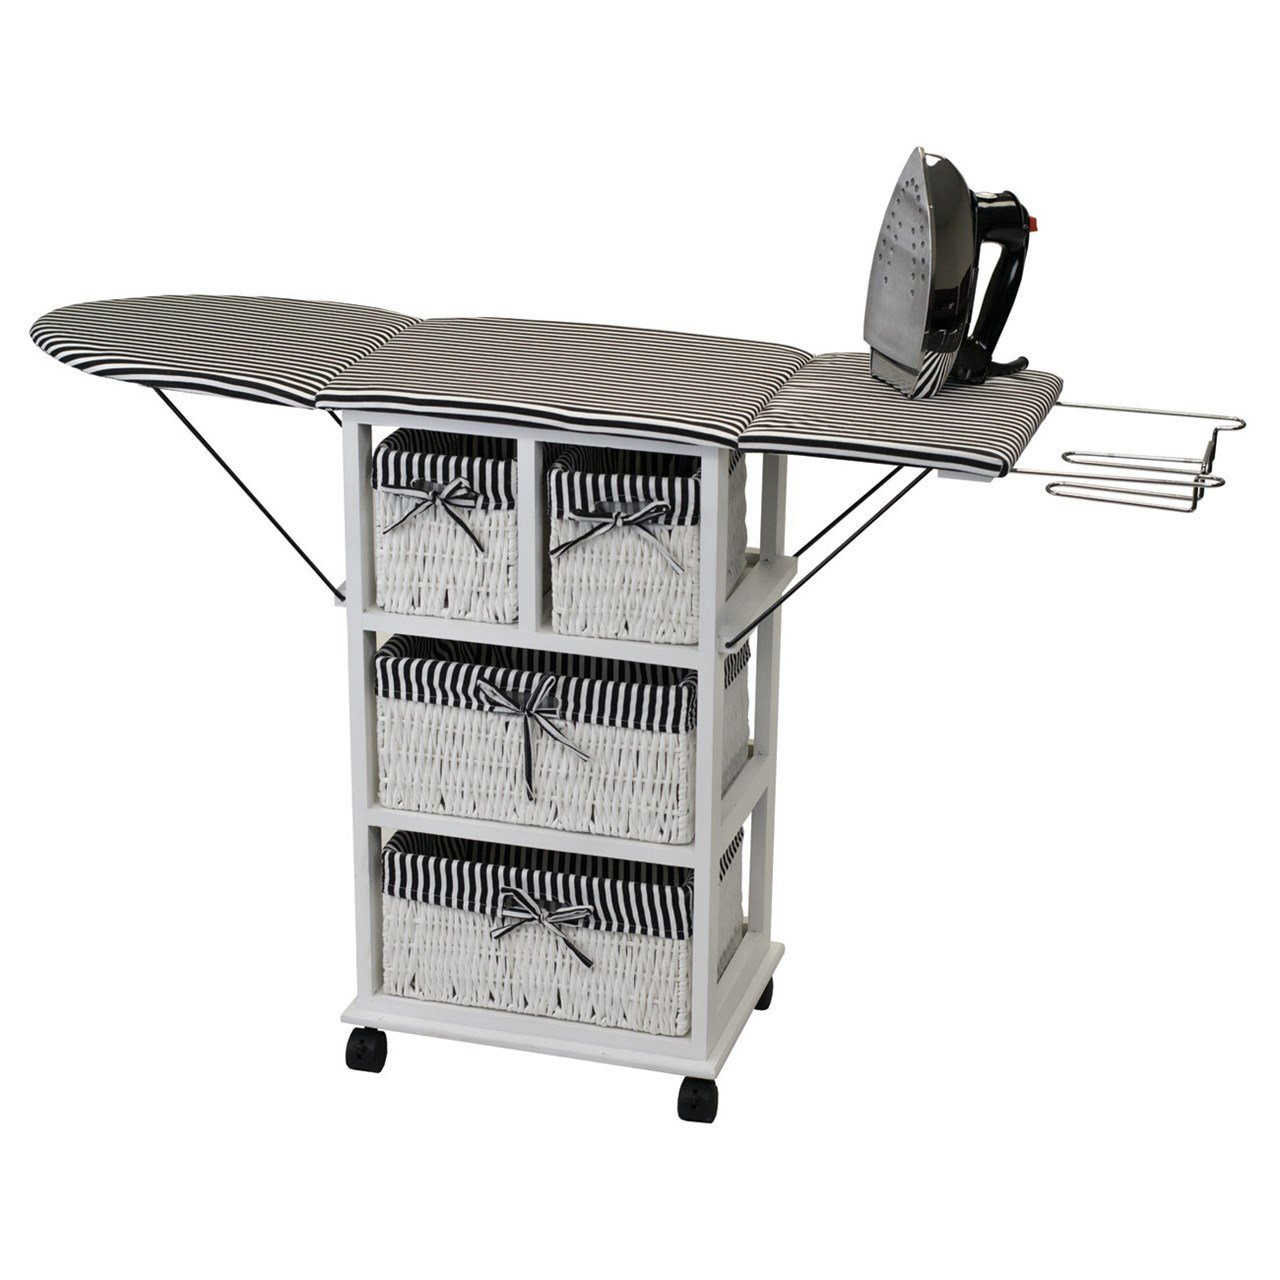 Rolling Ironing Board Station - Home Storage Unit by MaxiAids (Image #1)